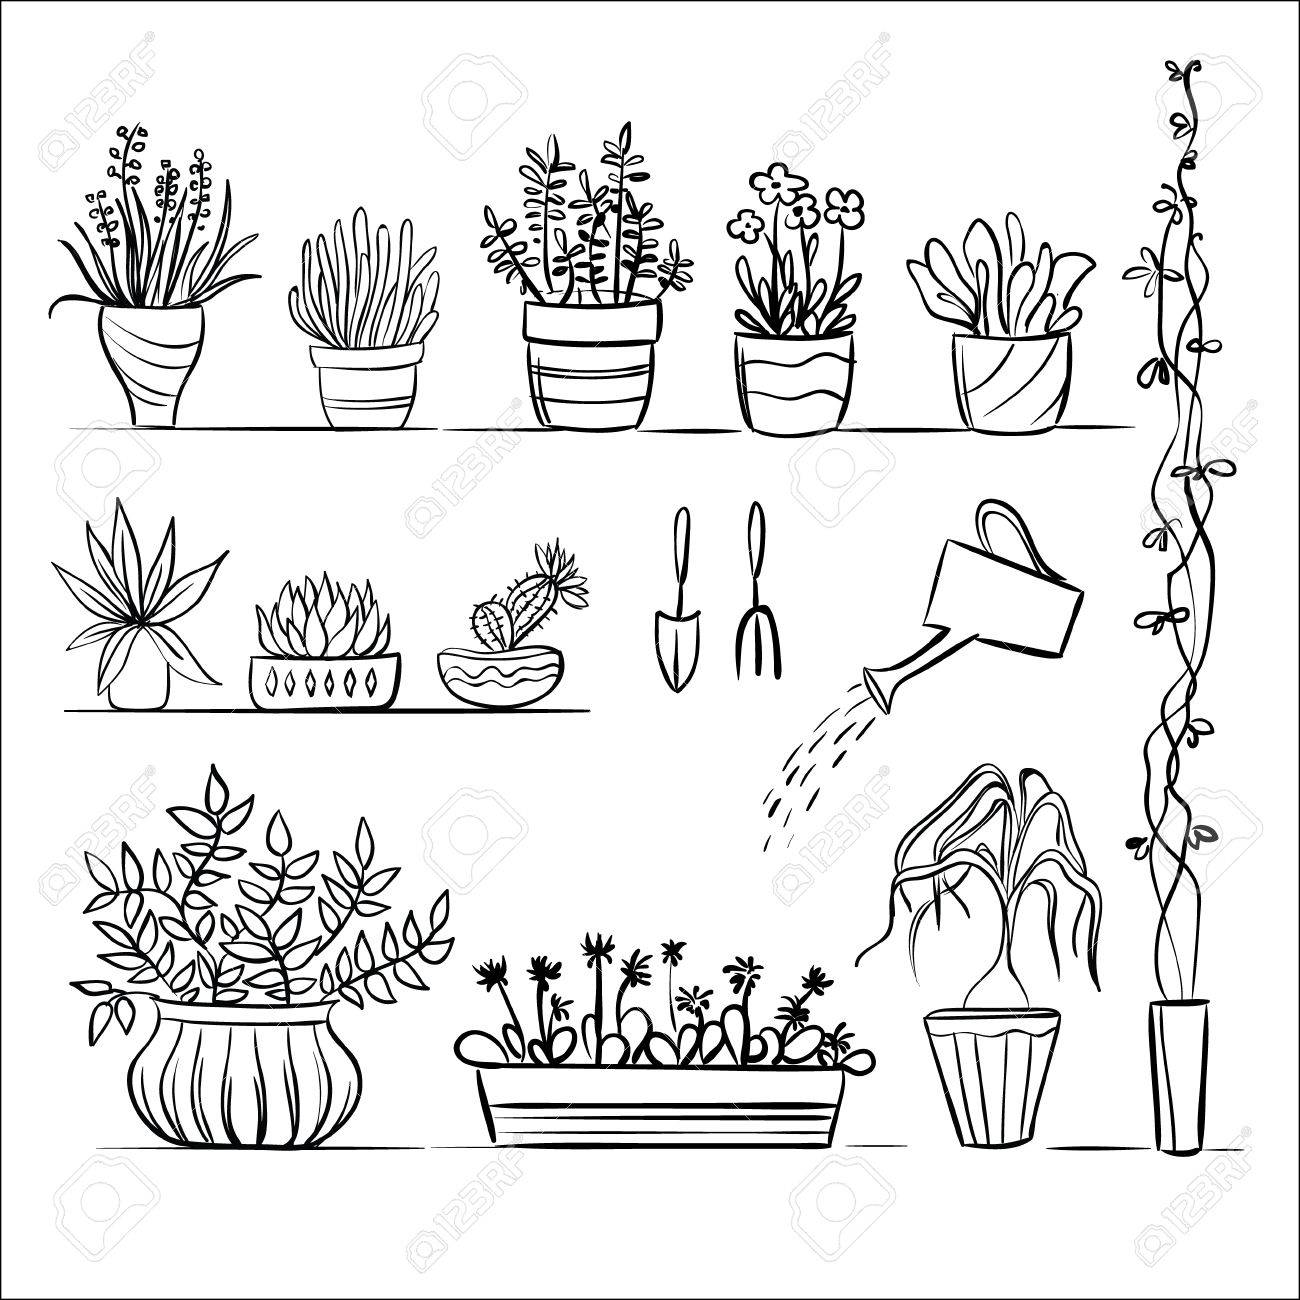 Pot Plants And Tools Sketch  Hand Drawing Set Royalty Free